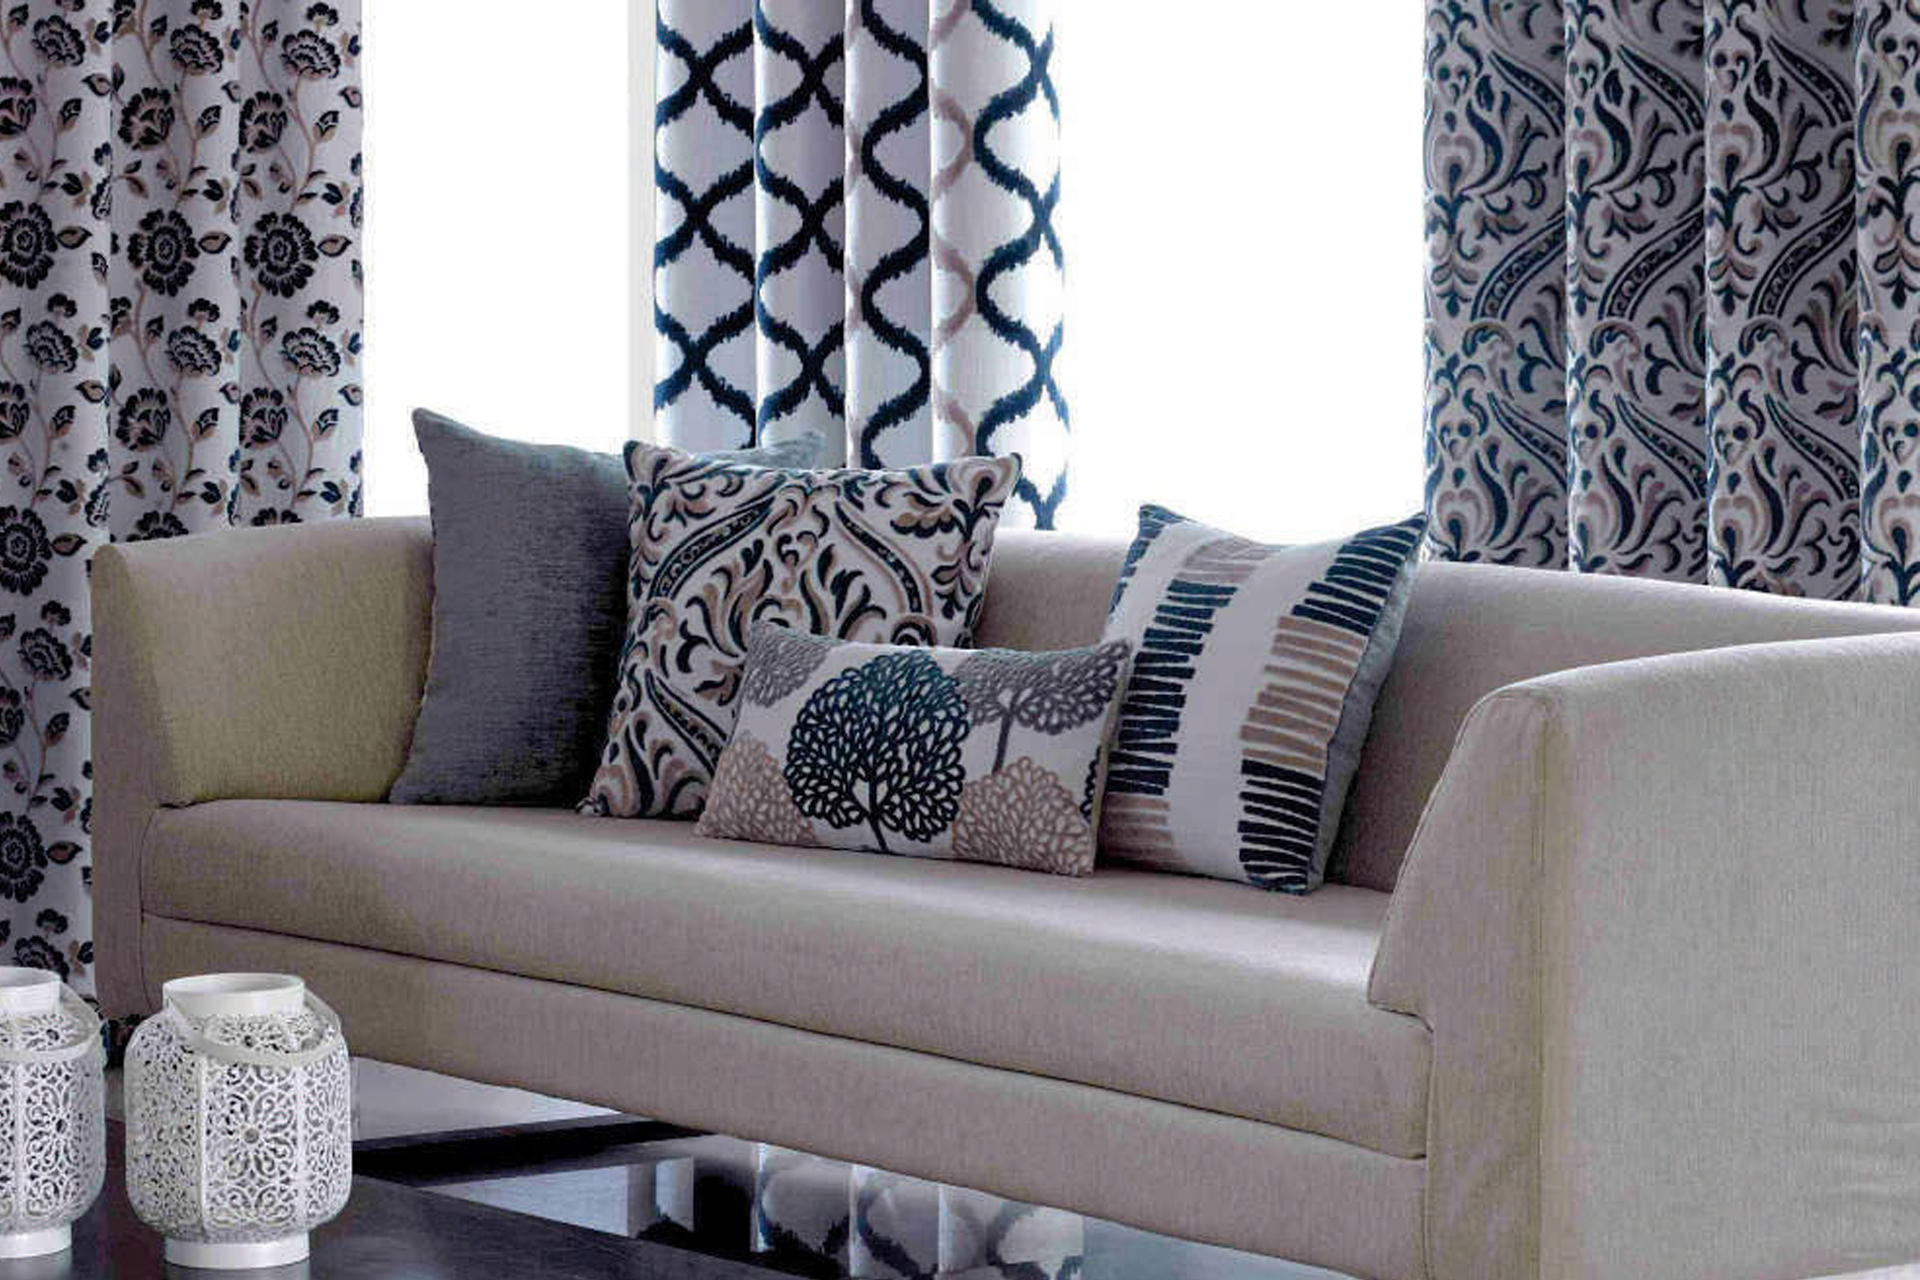 About Us Chennai Based Kapoors Furnishing Fabrics